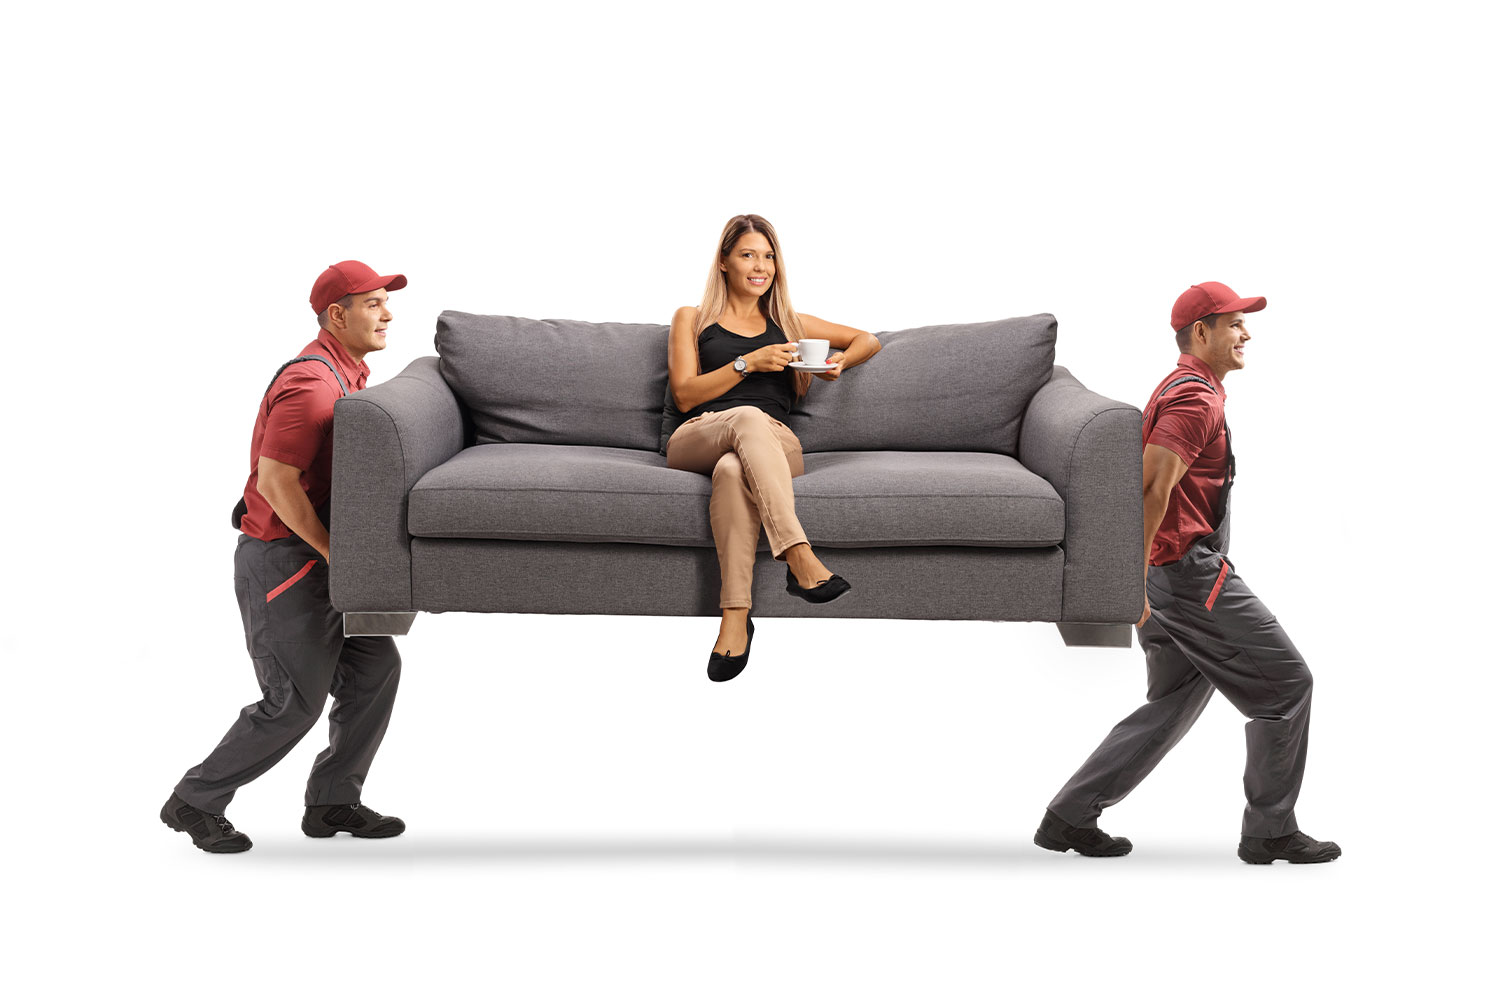 Movers carrying a couch with a girl on top